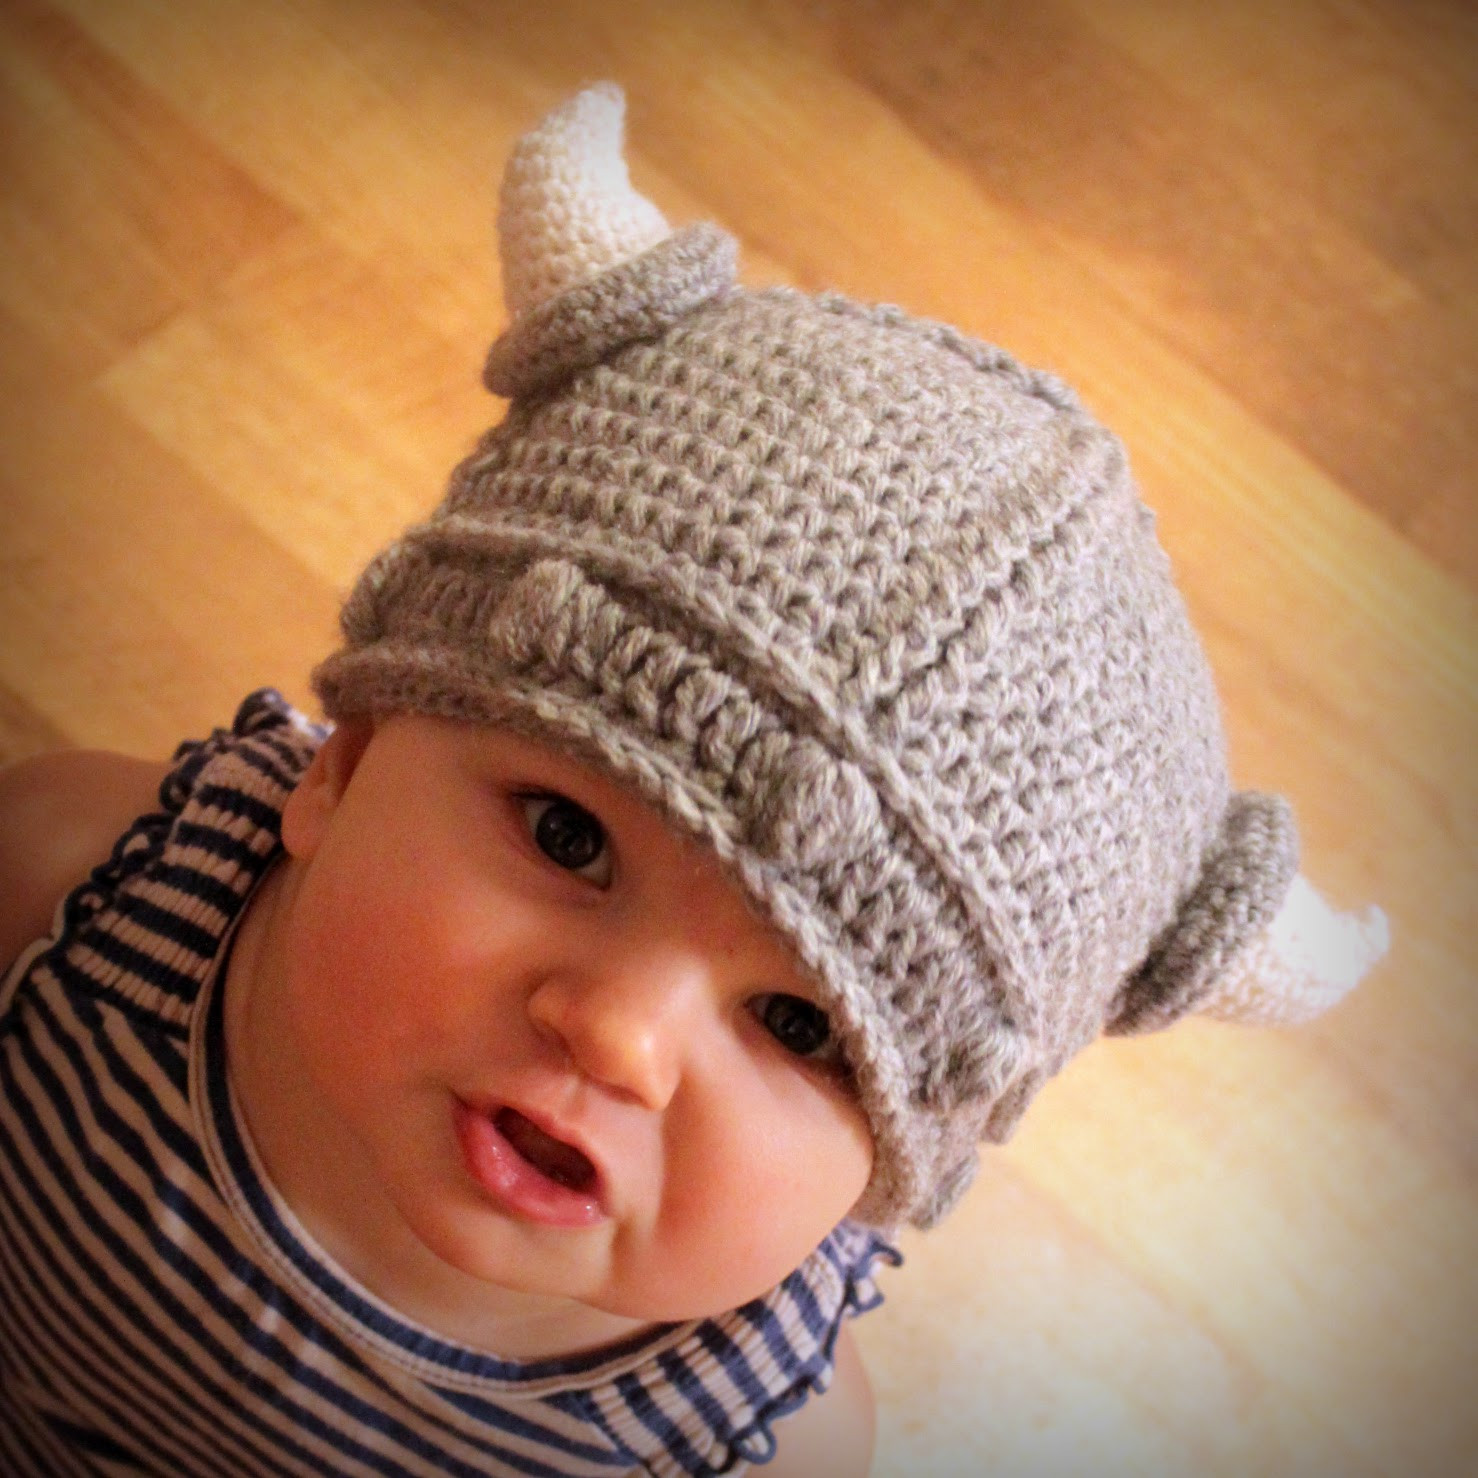 Inspirational Crochet for Free Lael Viking Hat Size Newborn Adult Free Crochet Hat Patterns for Adults Of Incredible 50 Pics Free Crochet Hat Patterns for Adults